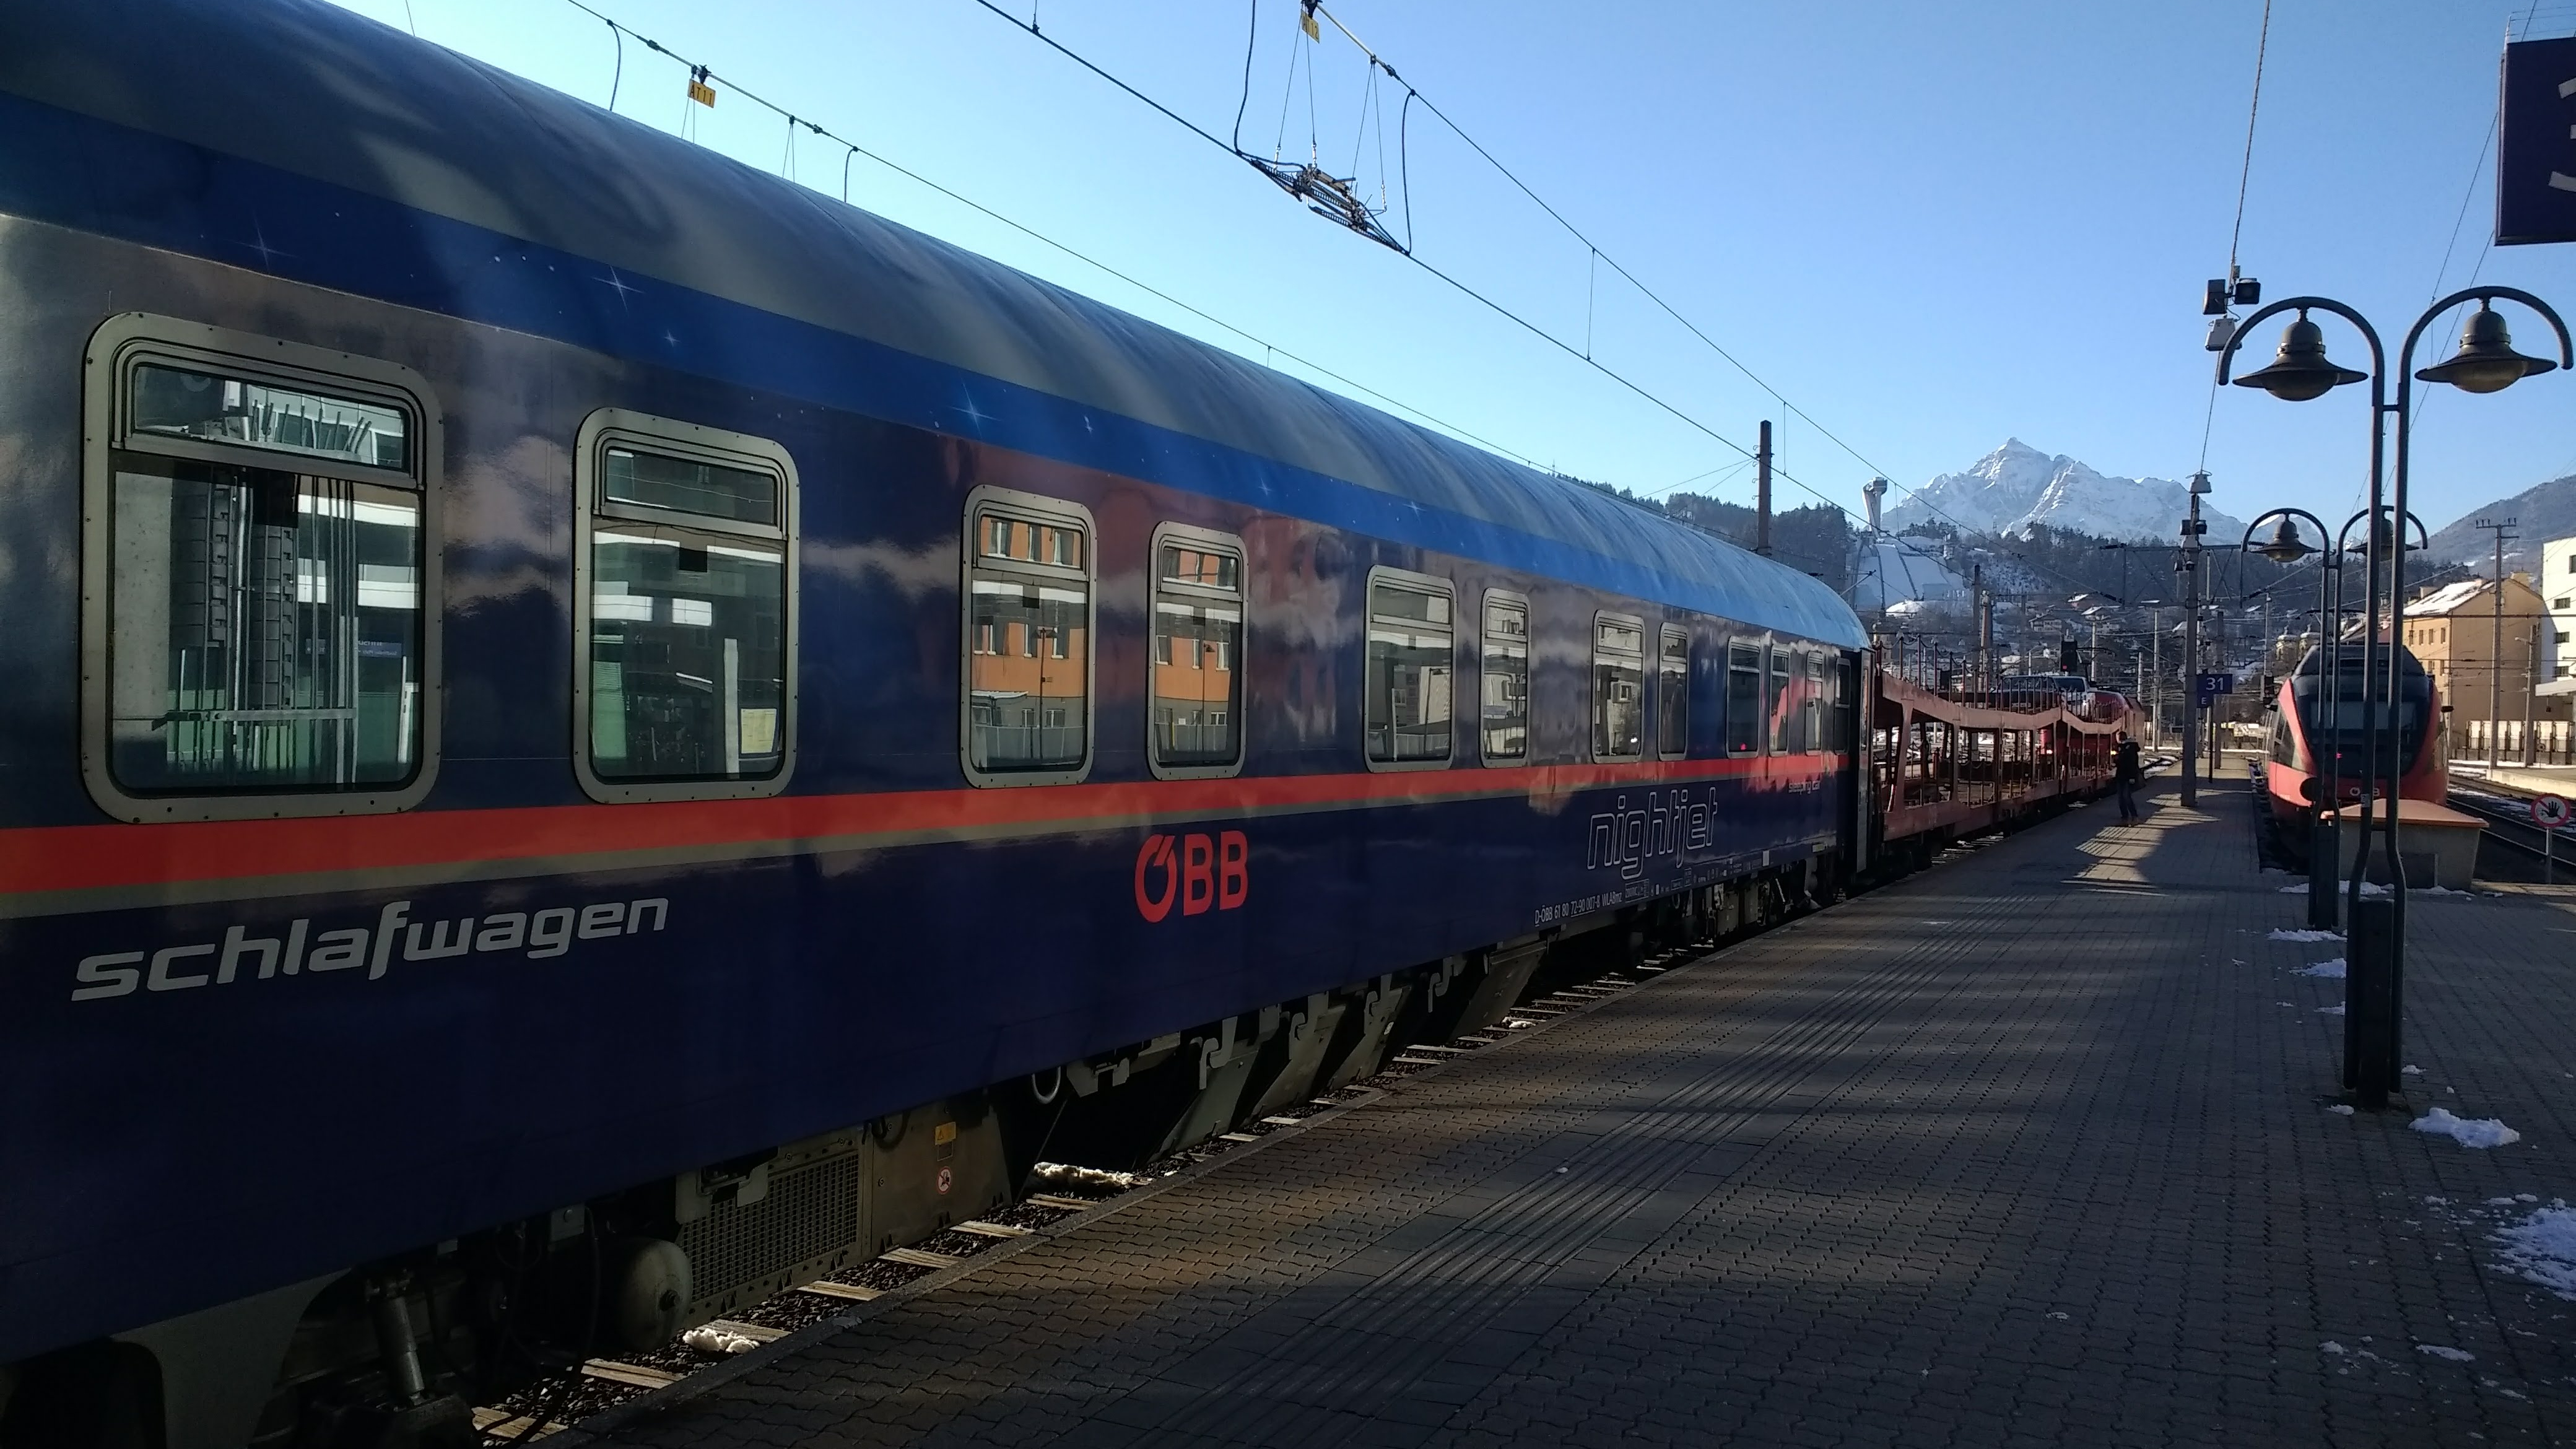 A German train. We can see a mountain in the background.